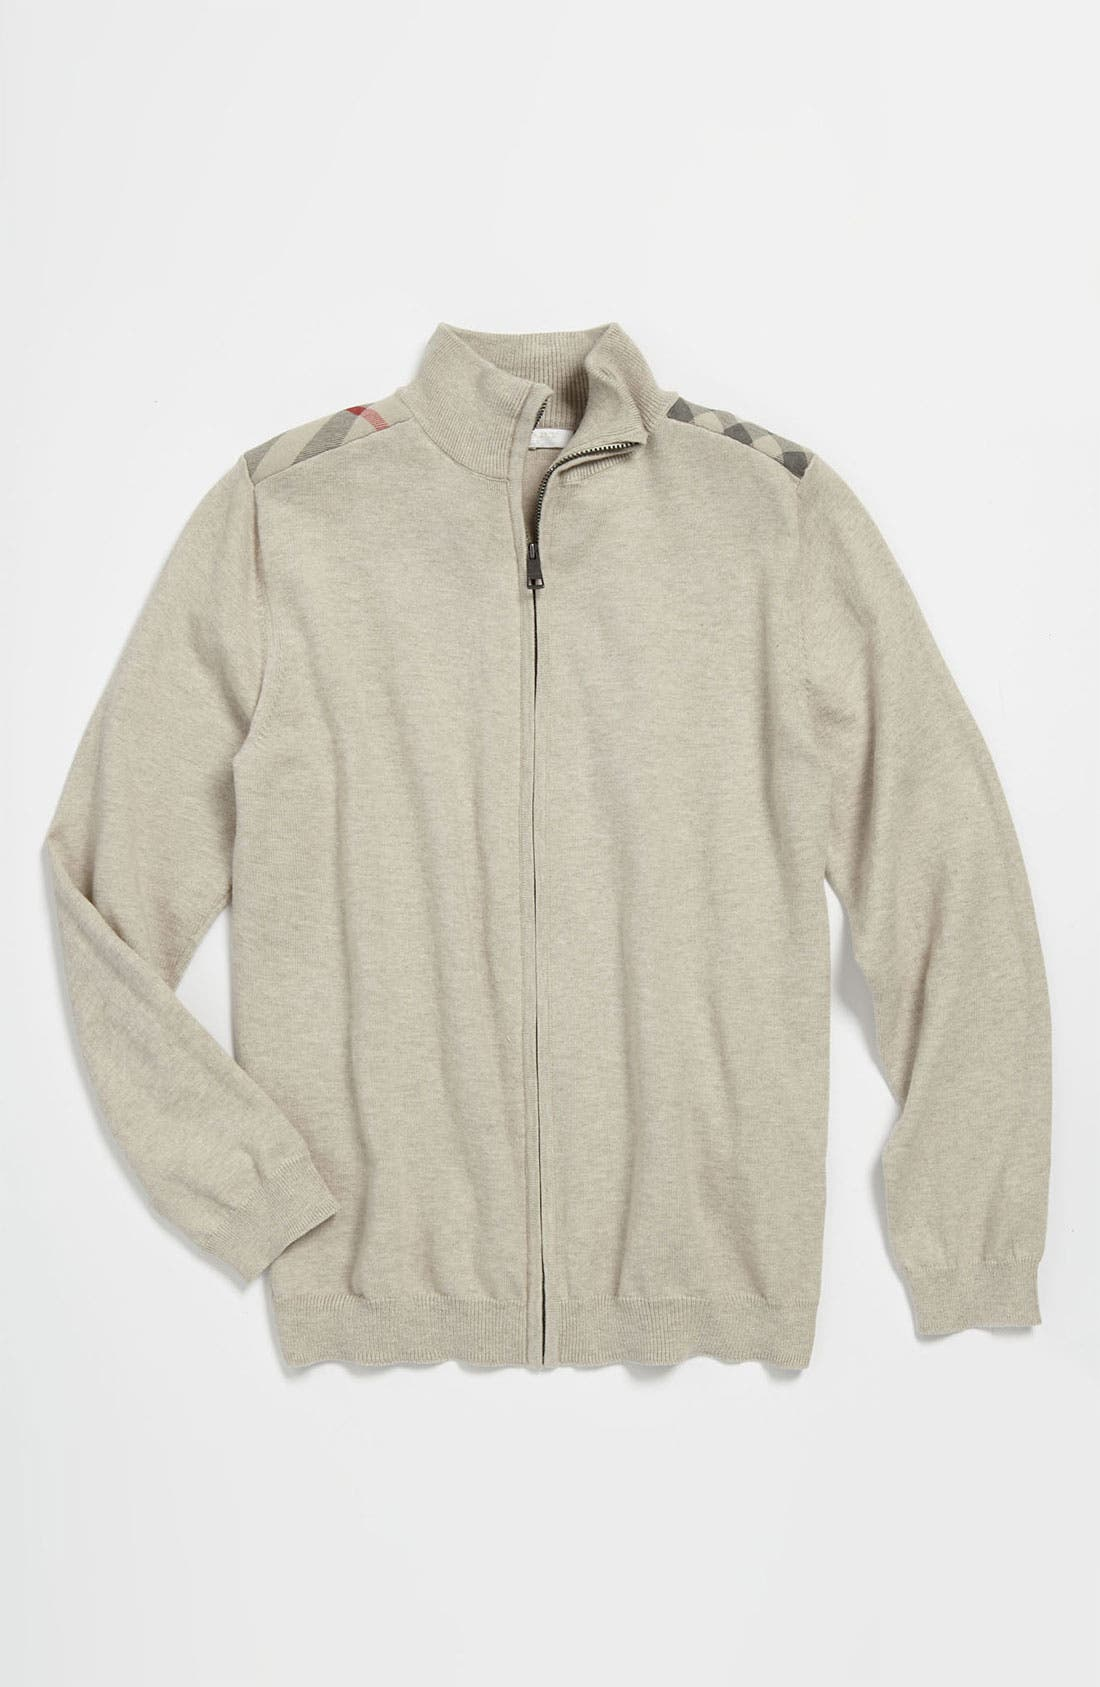 Alternate Image 1 Selected - Burberry Shoulder Patch Sweater (Big Boys)